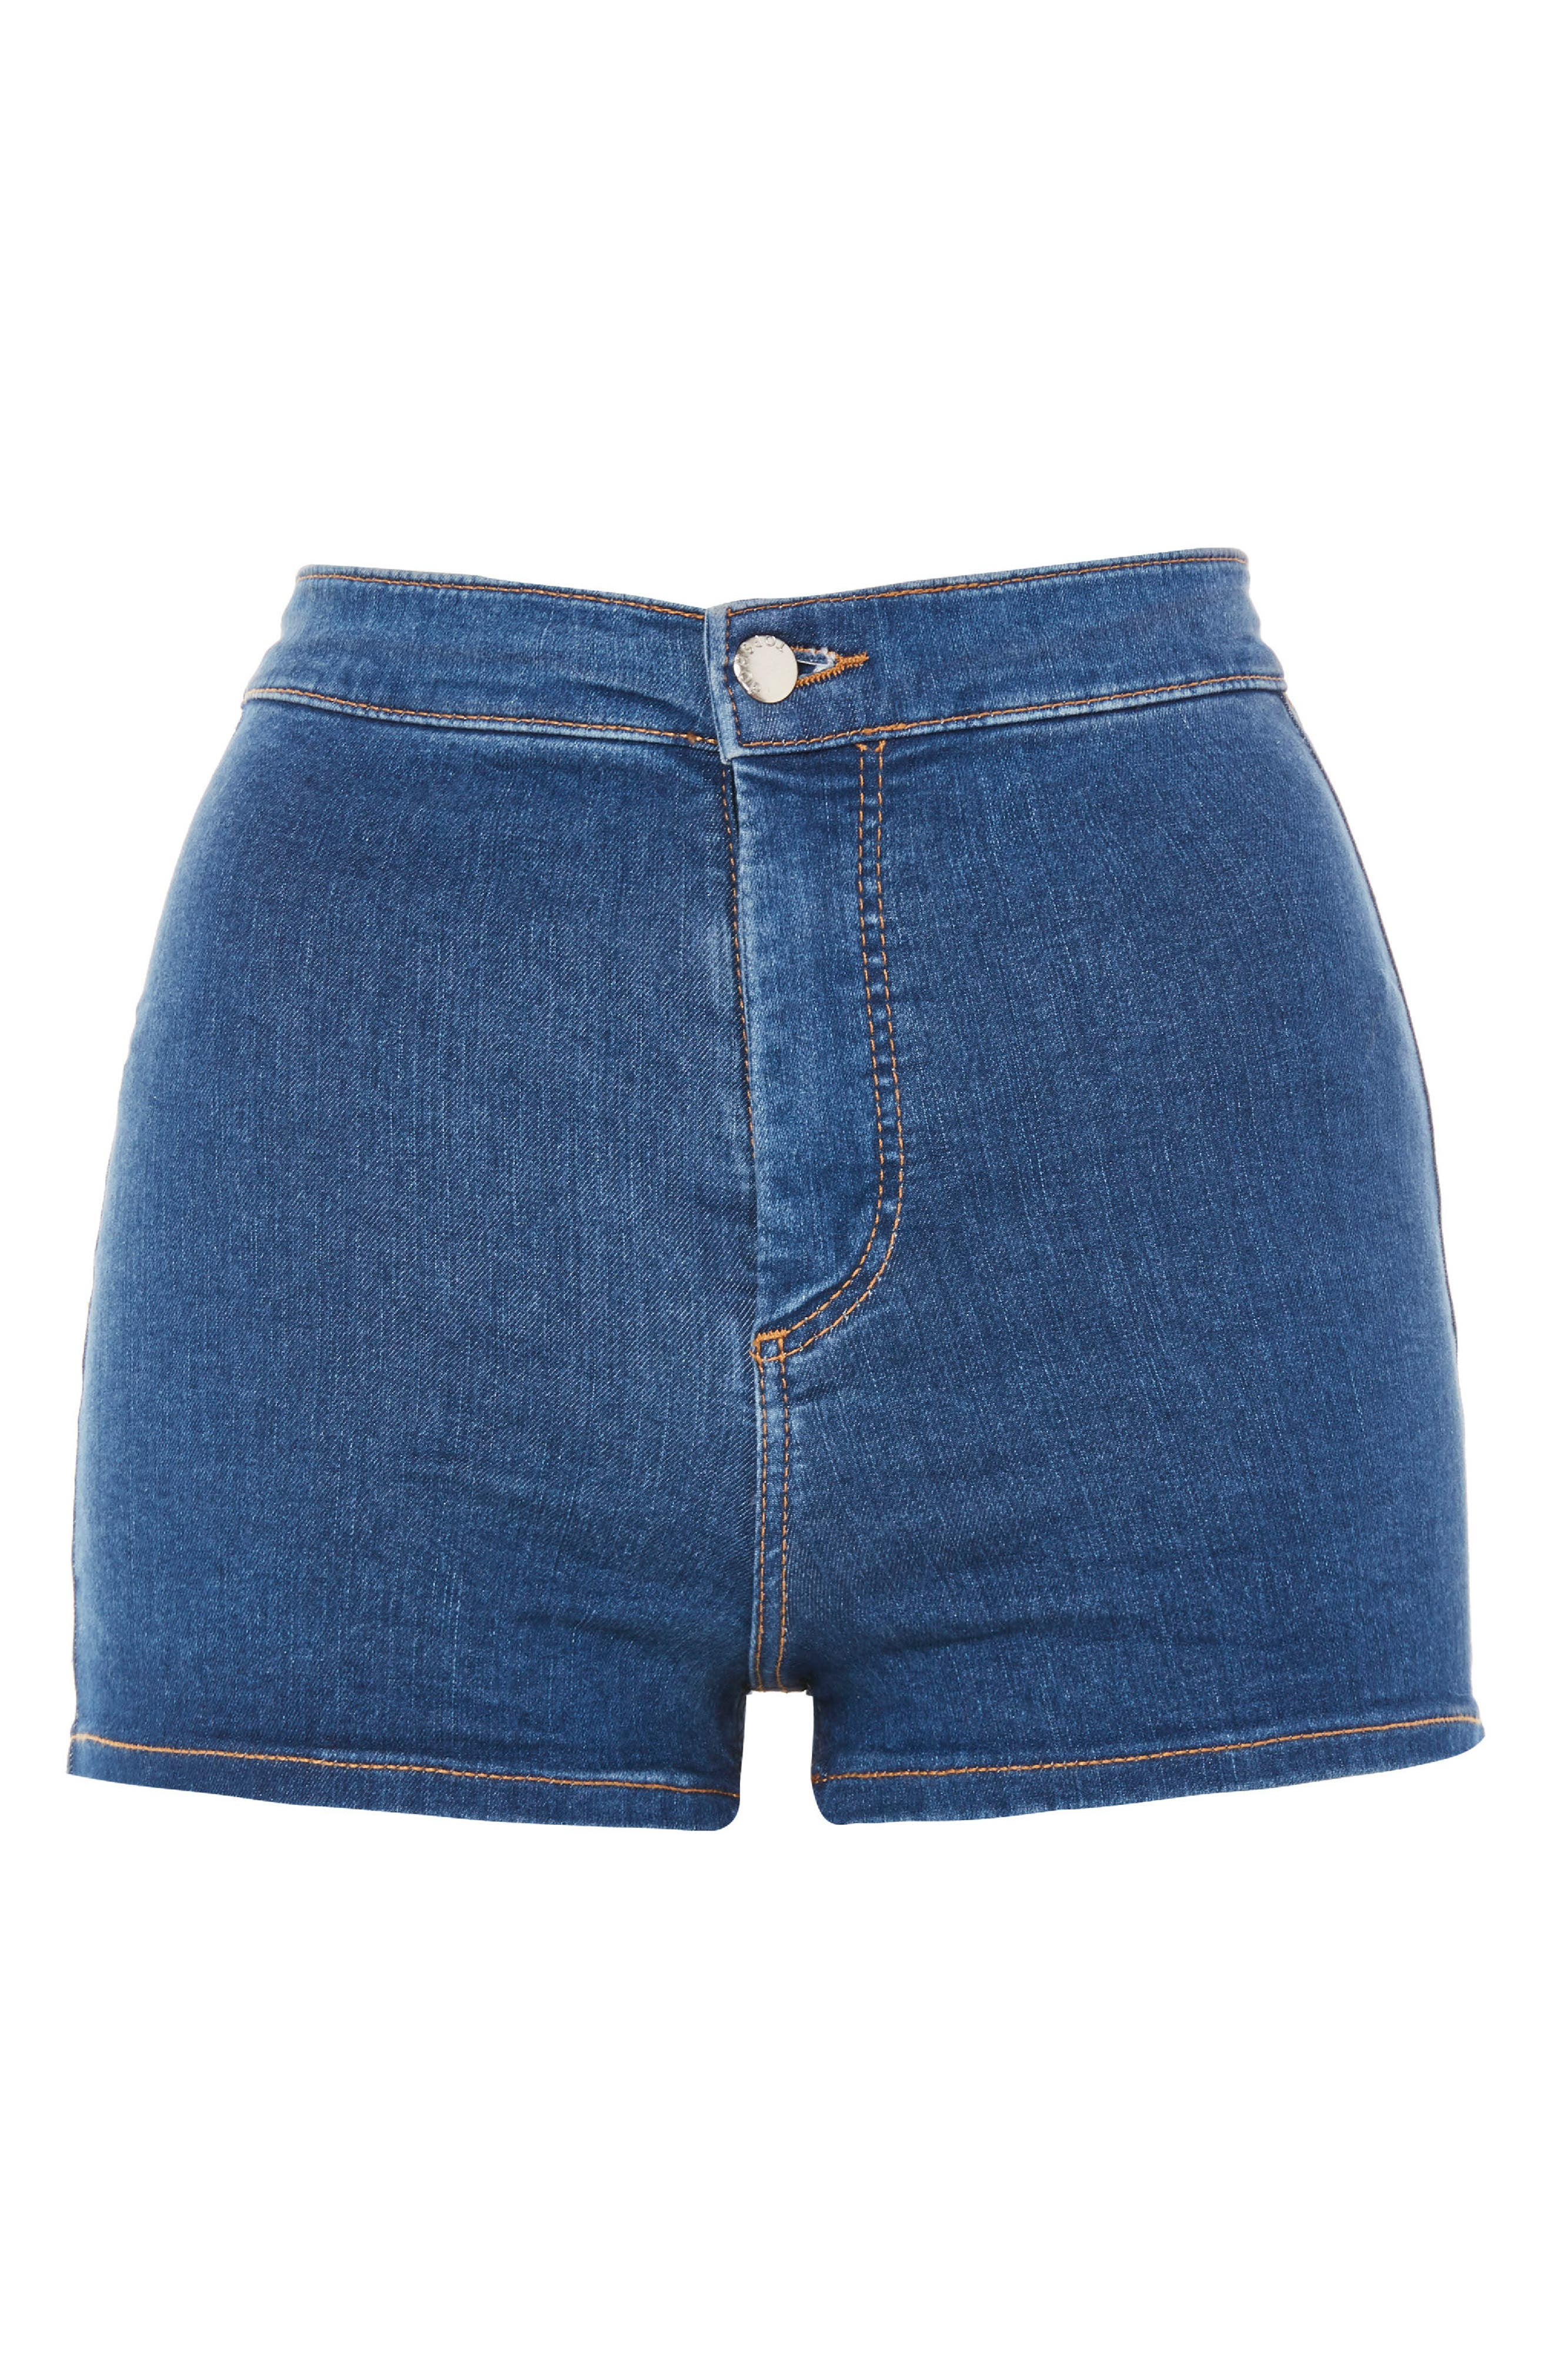 MOTO Joni Mid Denim Shorts,                             Alternate thumbnail 4, color,                             Mid Denim